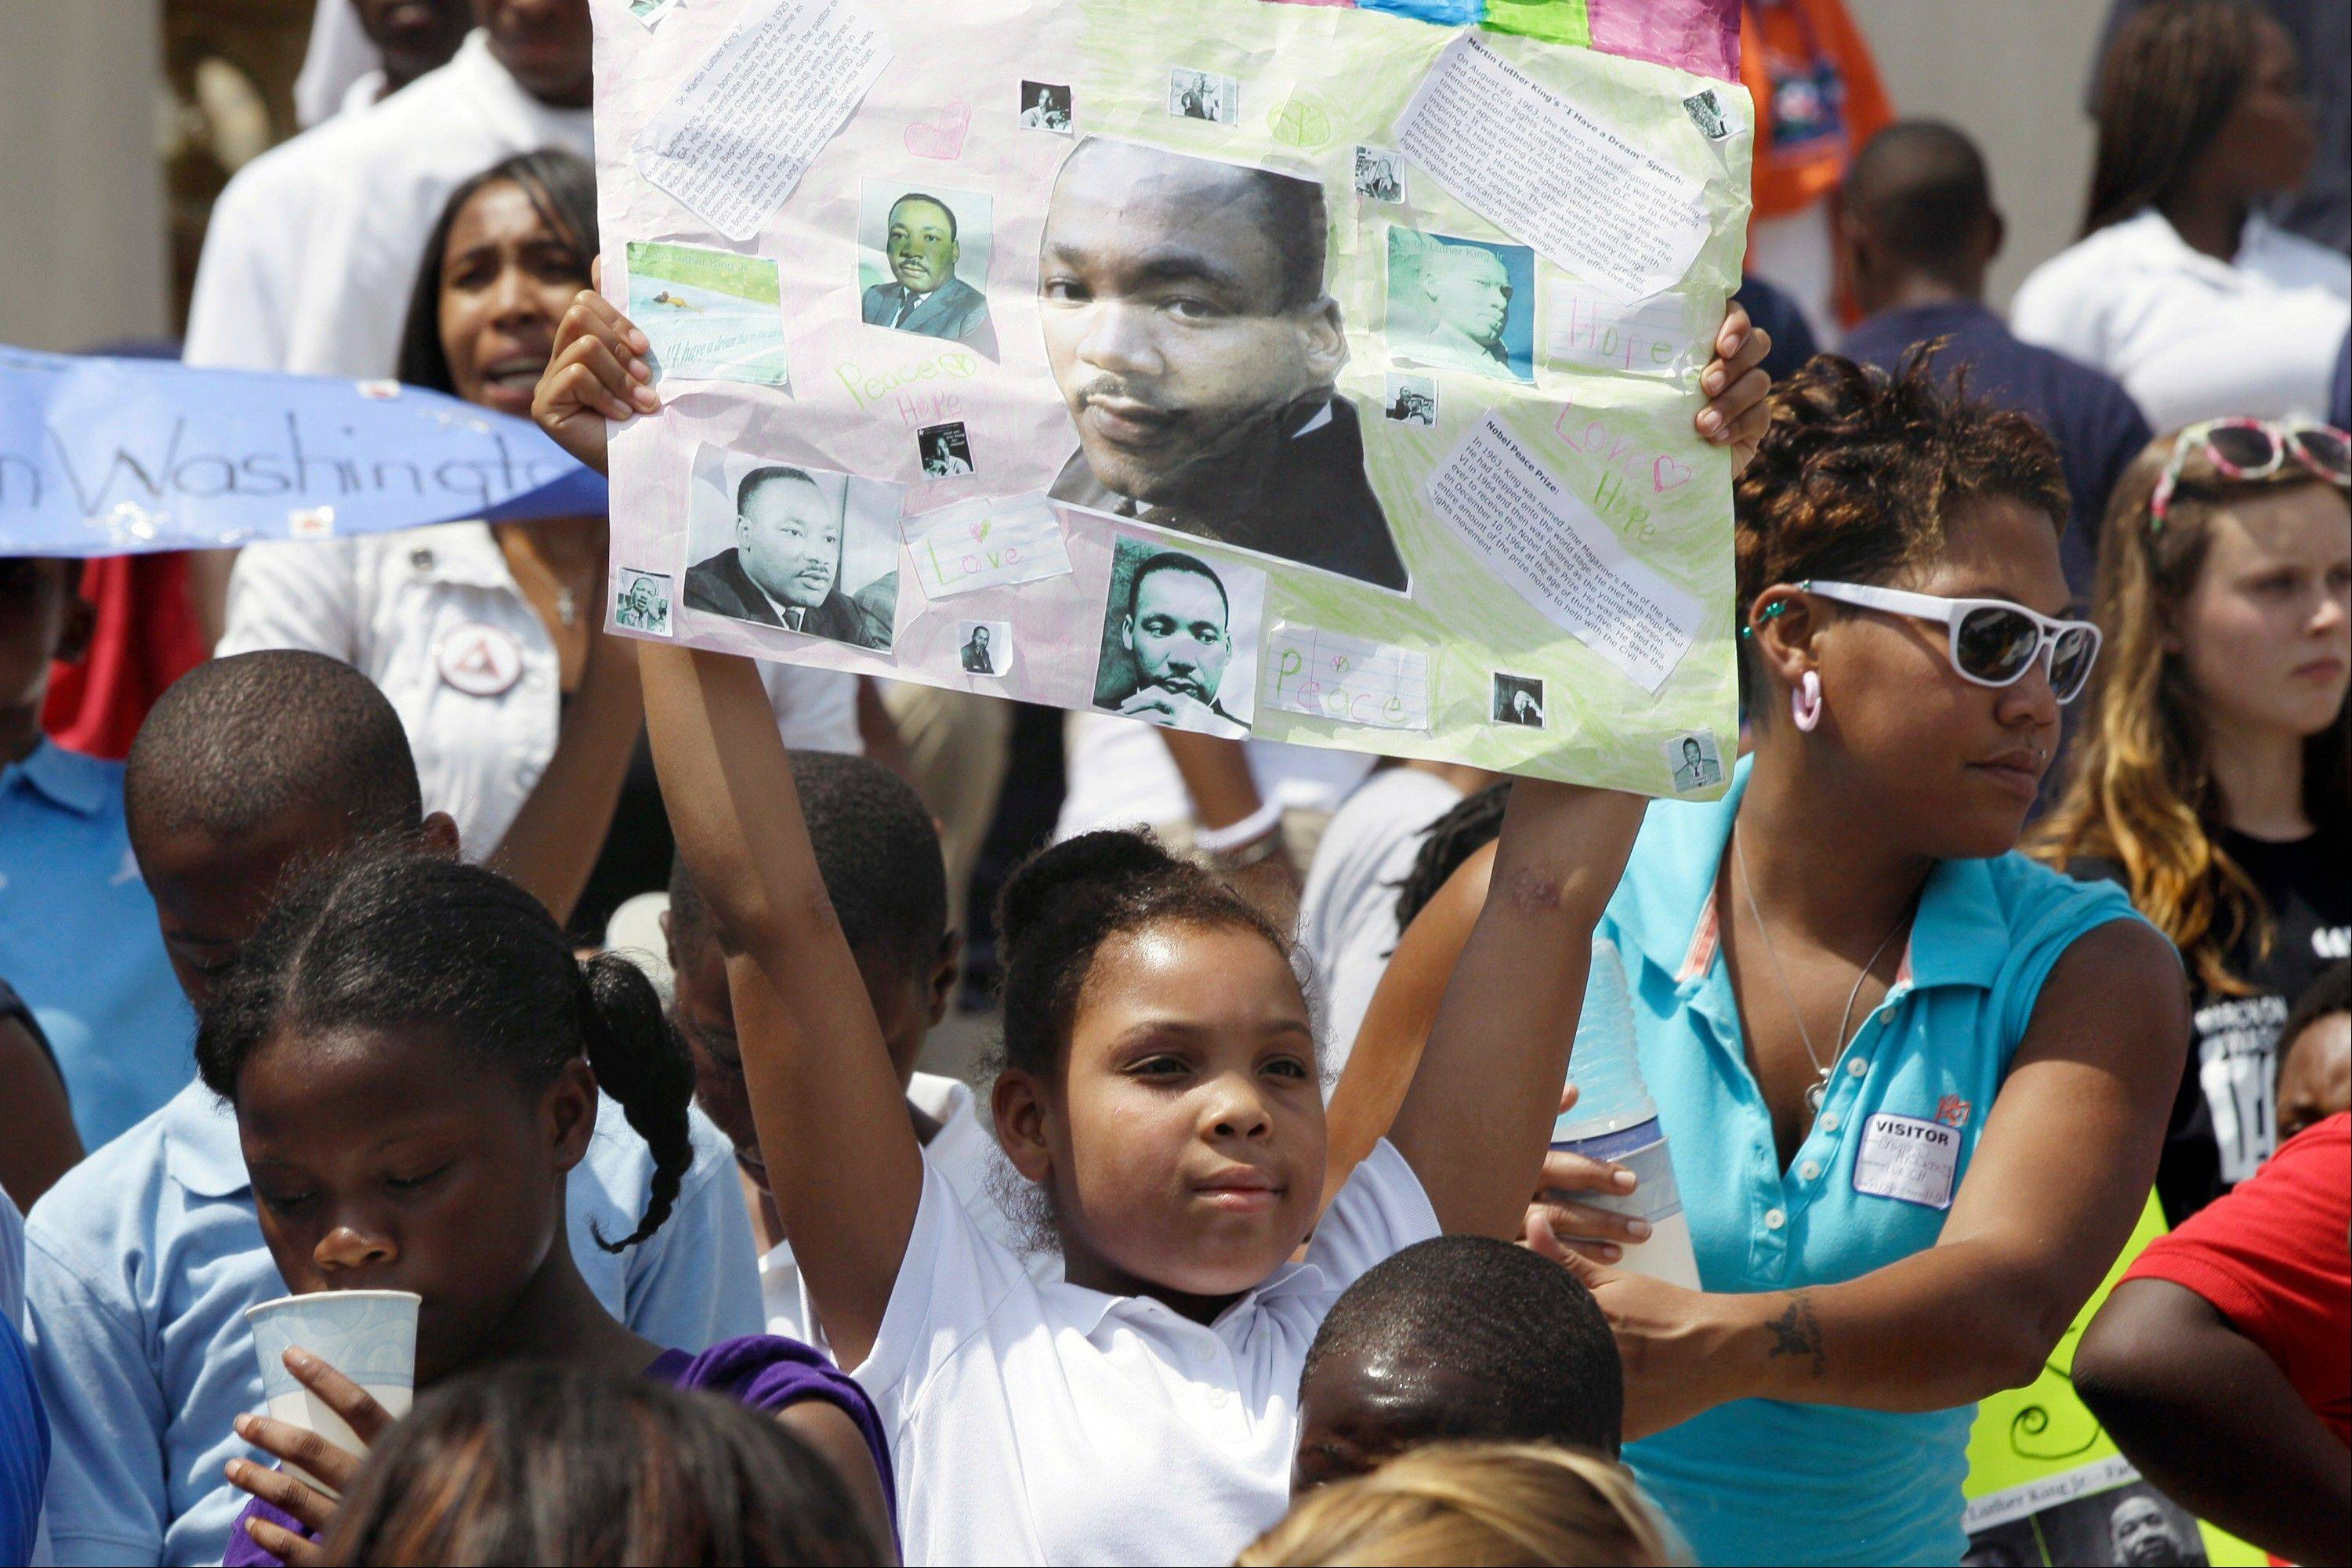 Nyla Washington, 10, of Little Rock, Ark., holds a poster she made showing Rev. Martin Luther King at the Arkansas state Capitol in Little Rock, Ark., Wednesday, Aug. 28, 2013. Hundreds gathered at the Capitol to mark the 50th anniversary of the March on Washington.